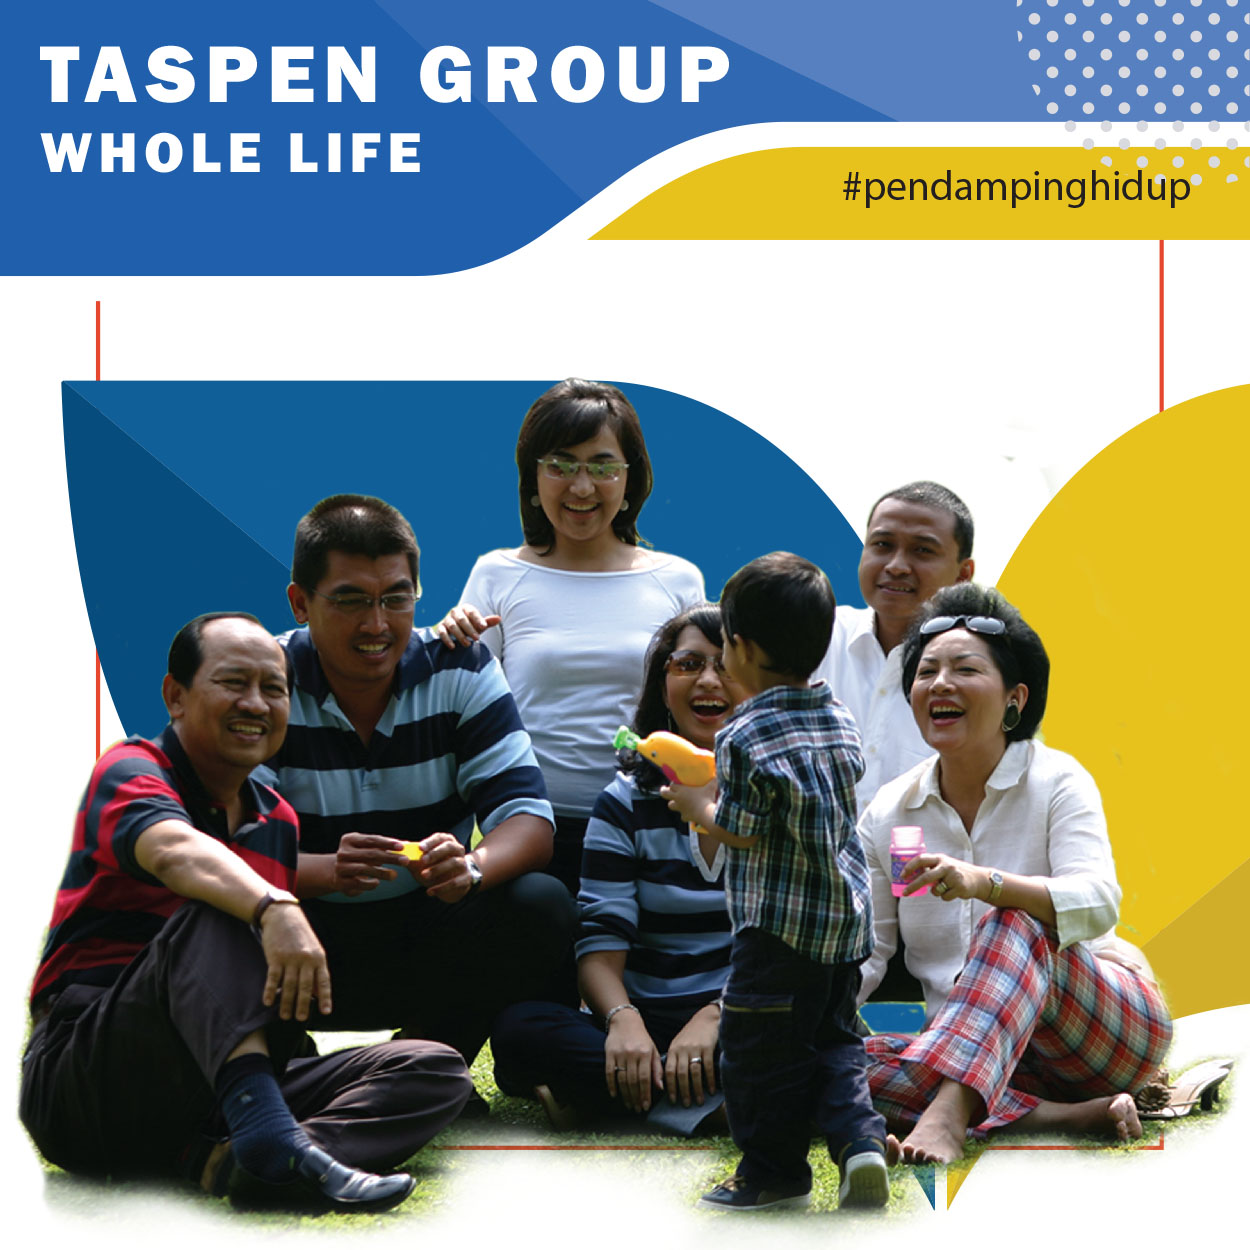 Taspen Group Whole Life